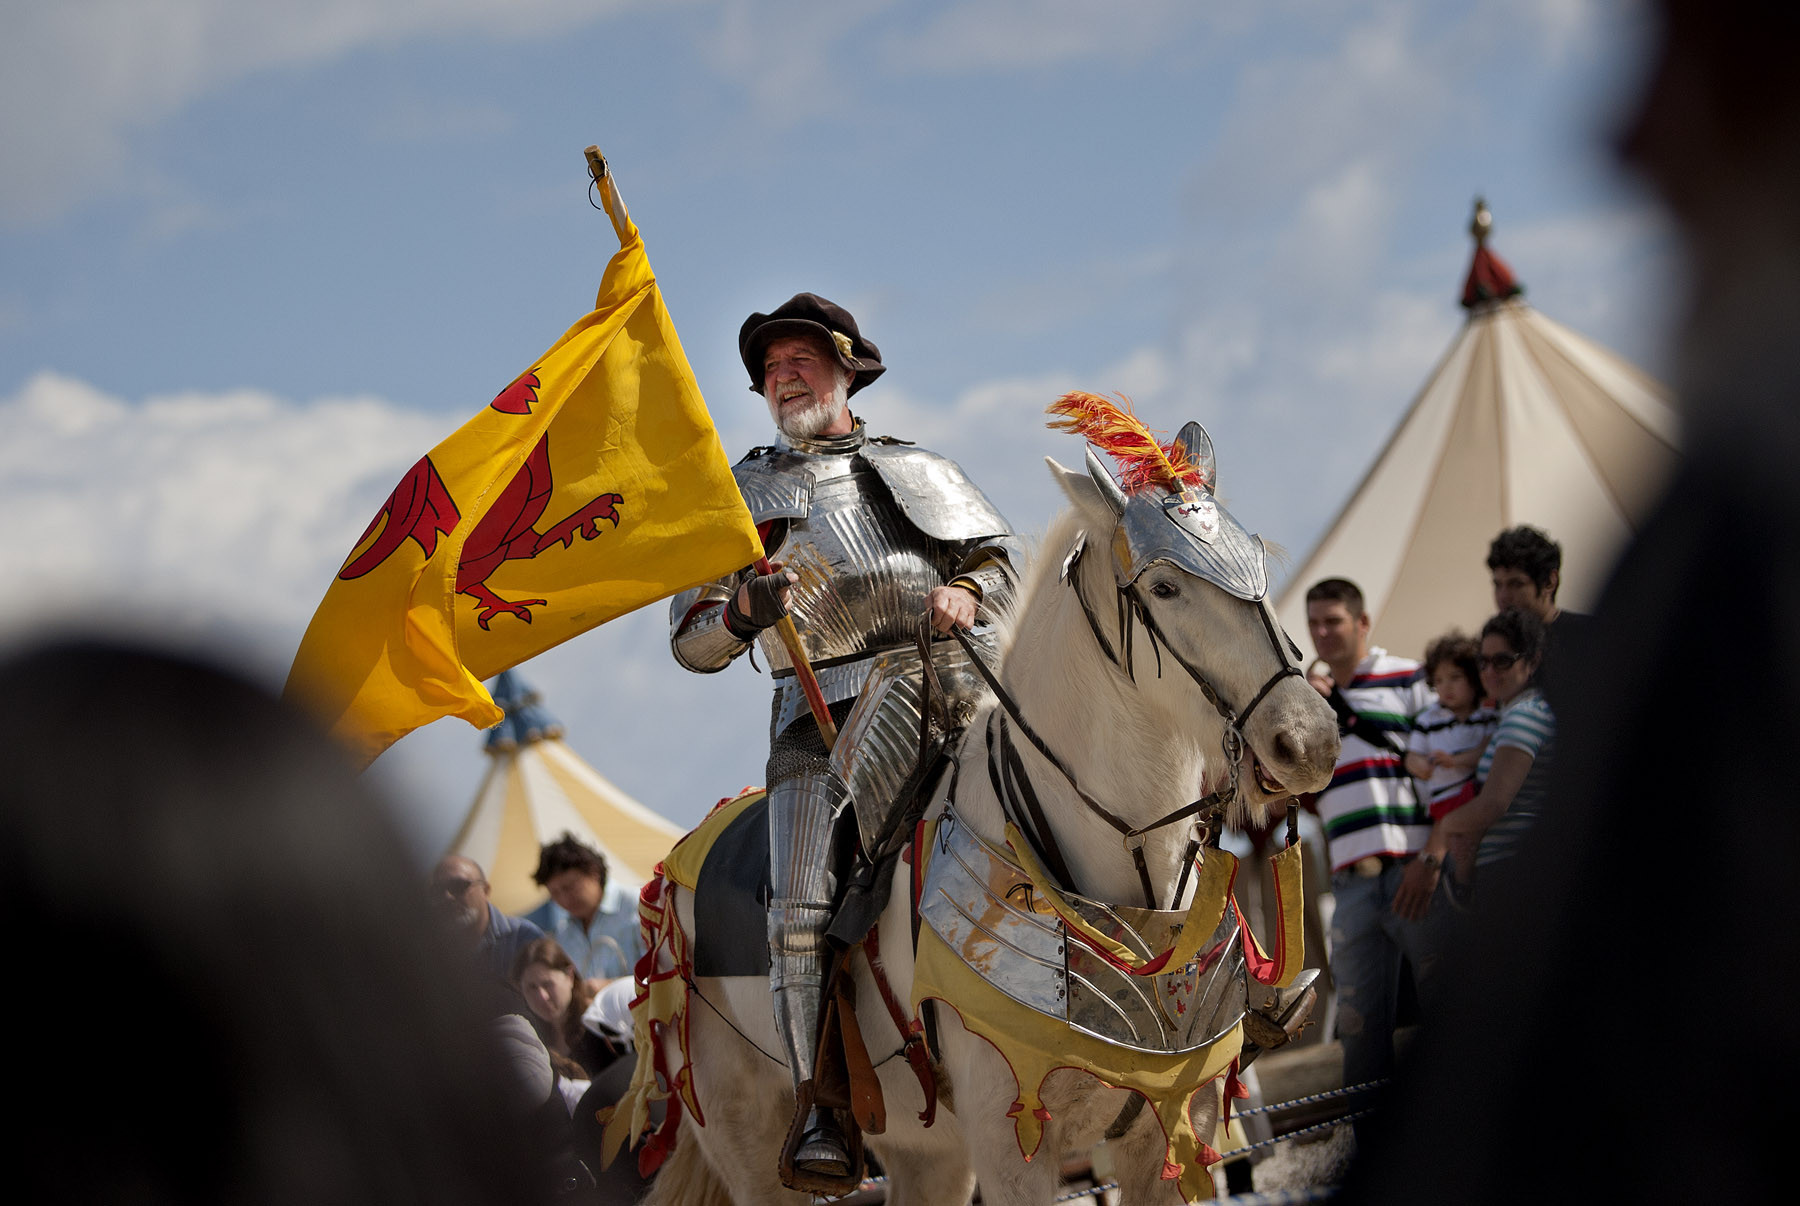 Things every South Floridian should do once - Renaissance Festival in Deerfield Beach